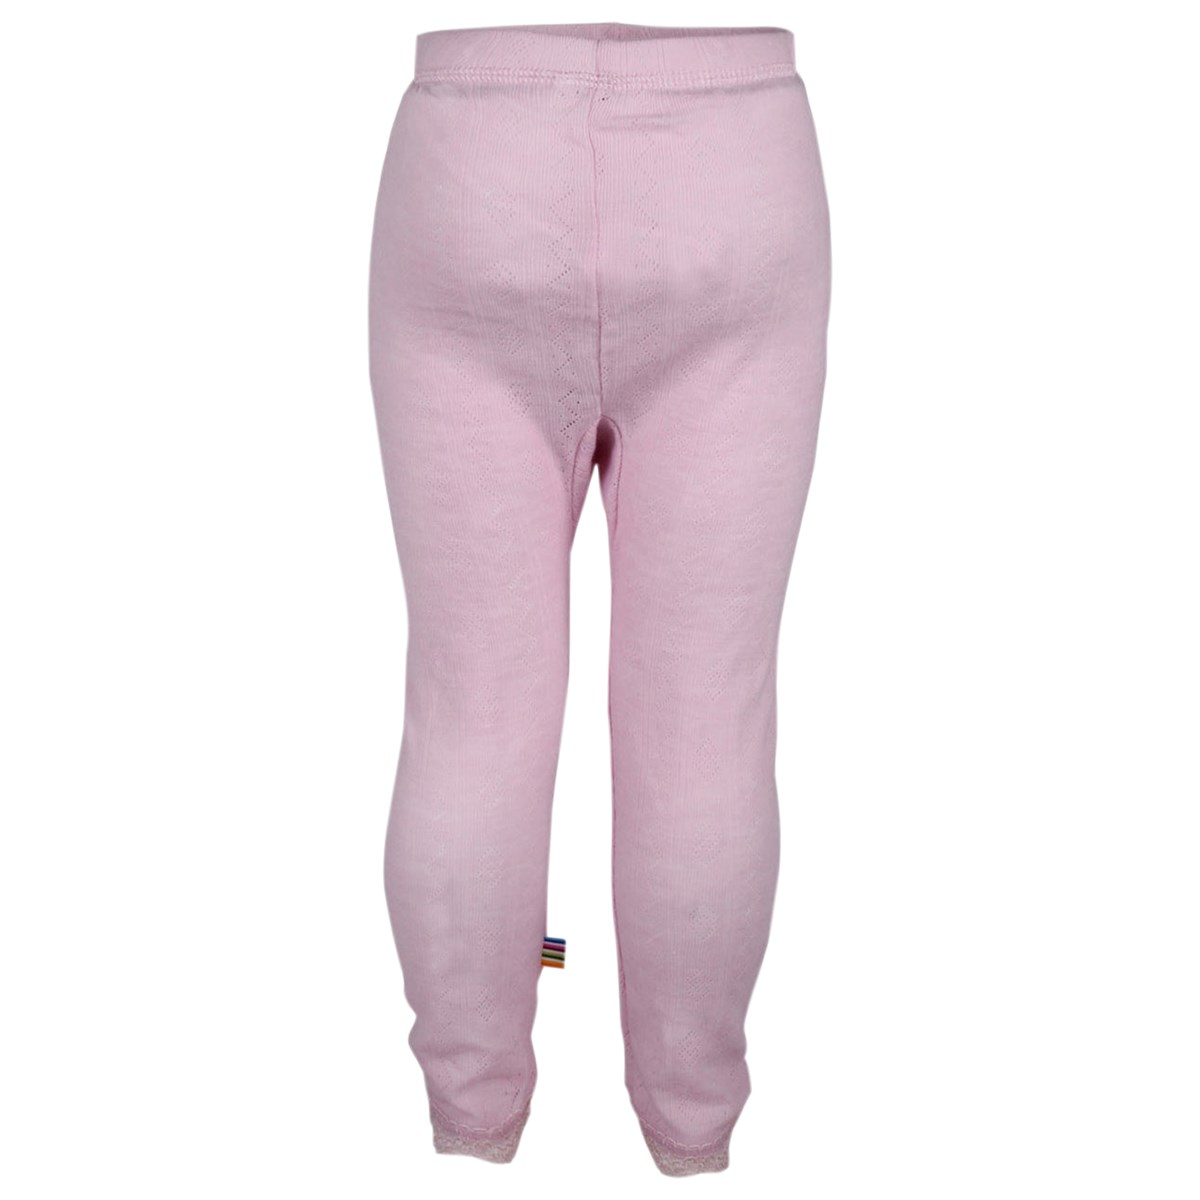 Leggings Prime Rose - Joha - Babyshop 9961399248126